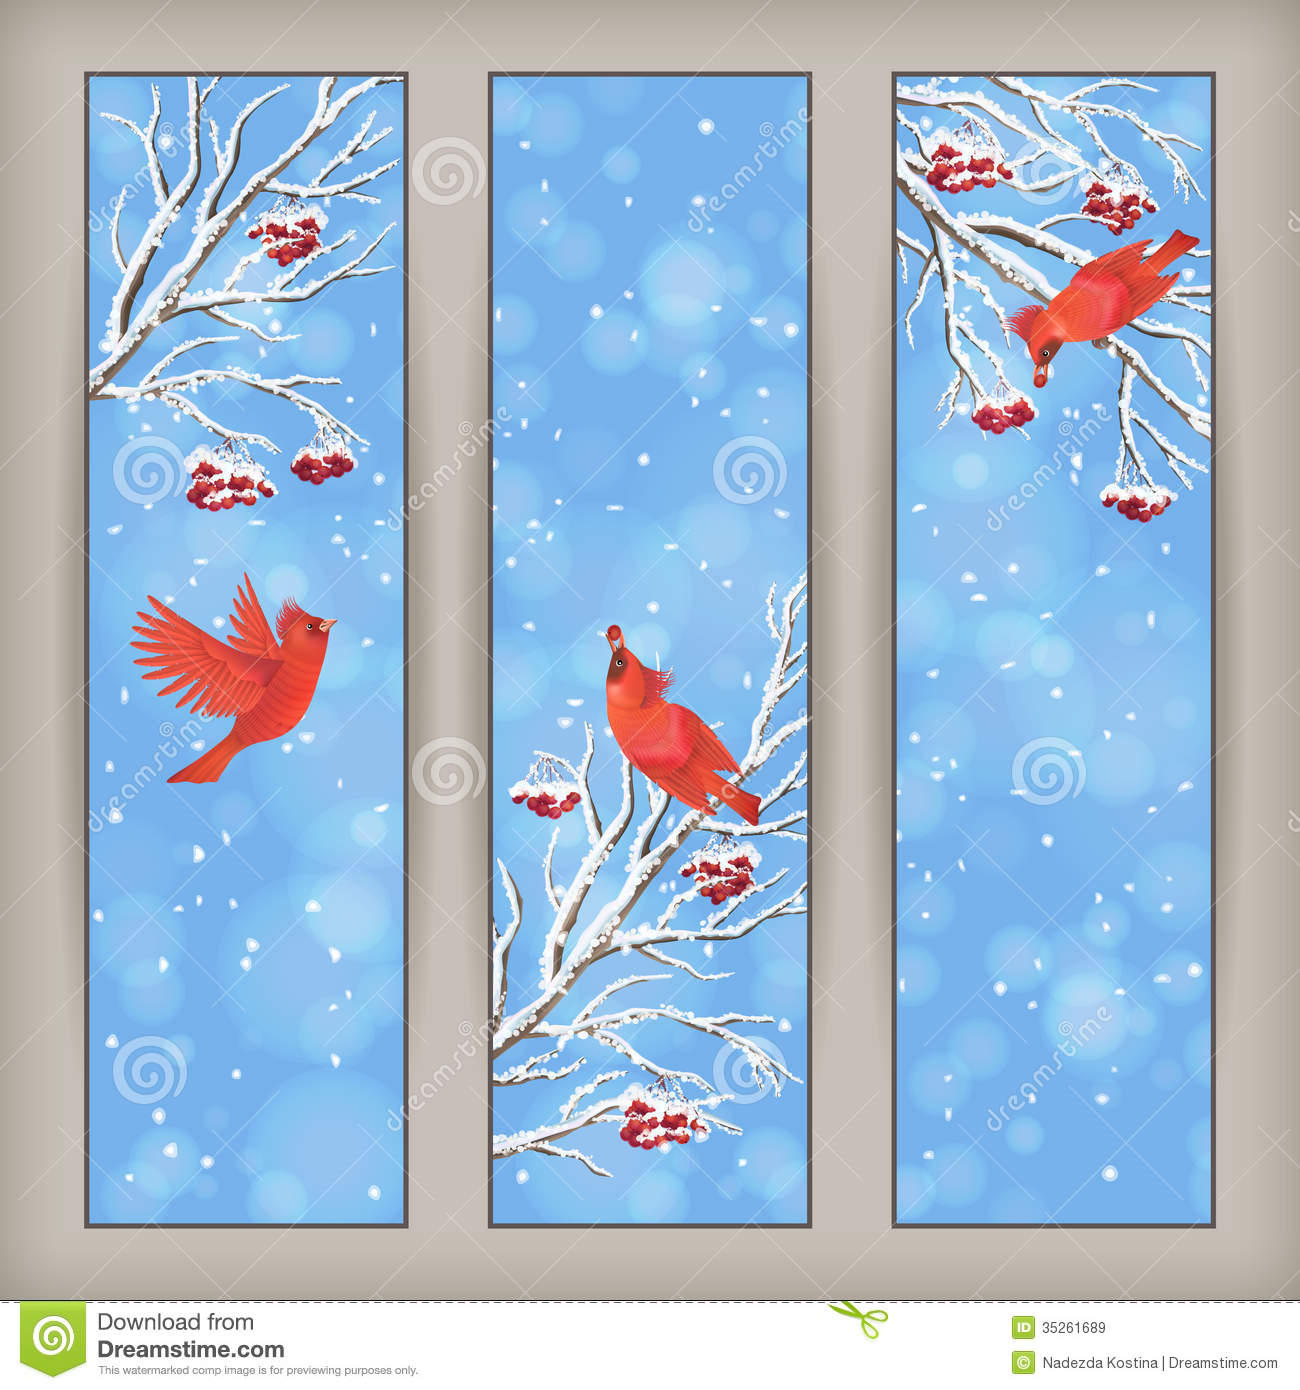 Vertical christmas banners with birds rowan tree branches and berries